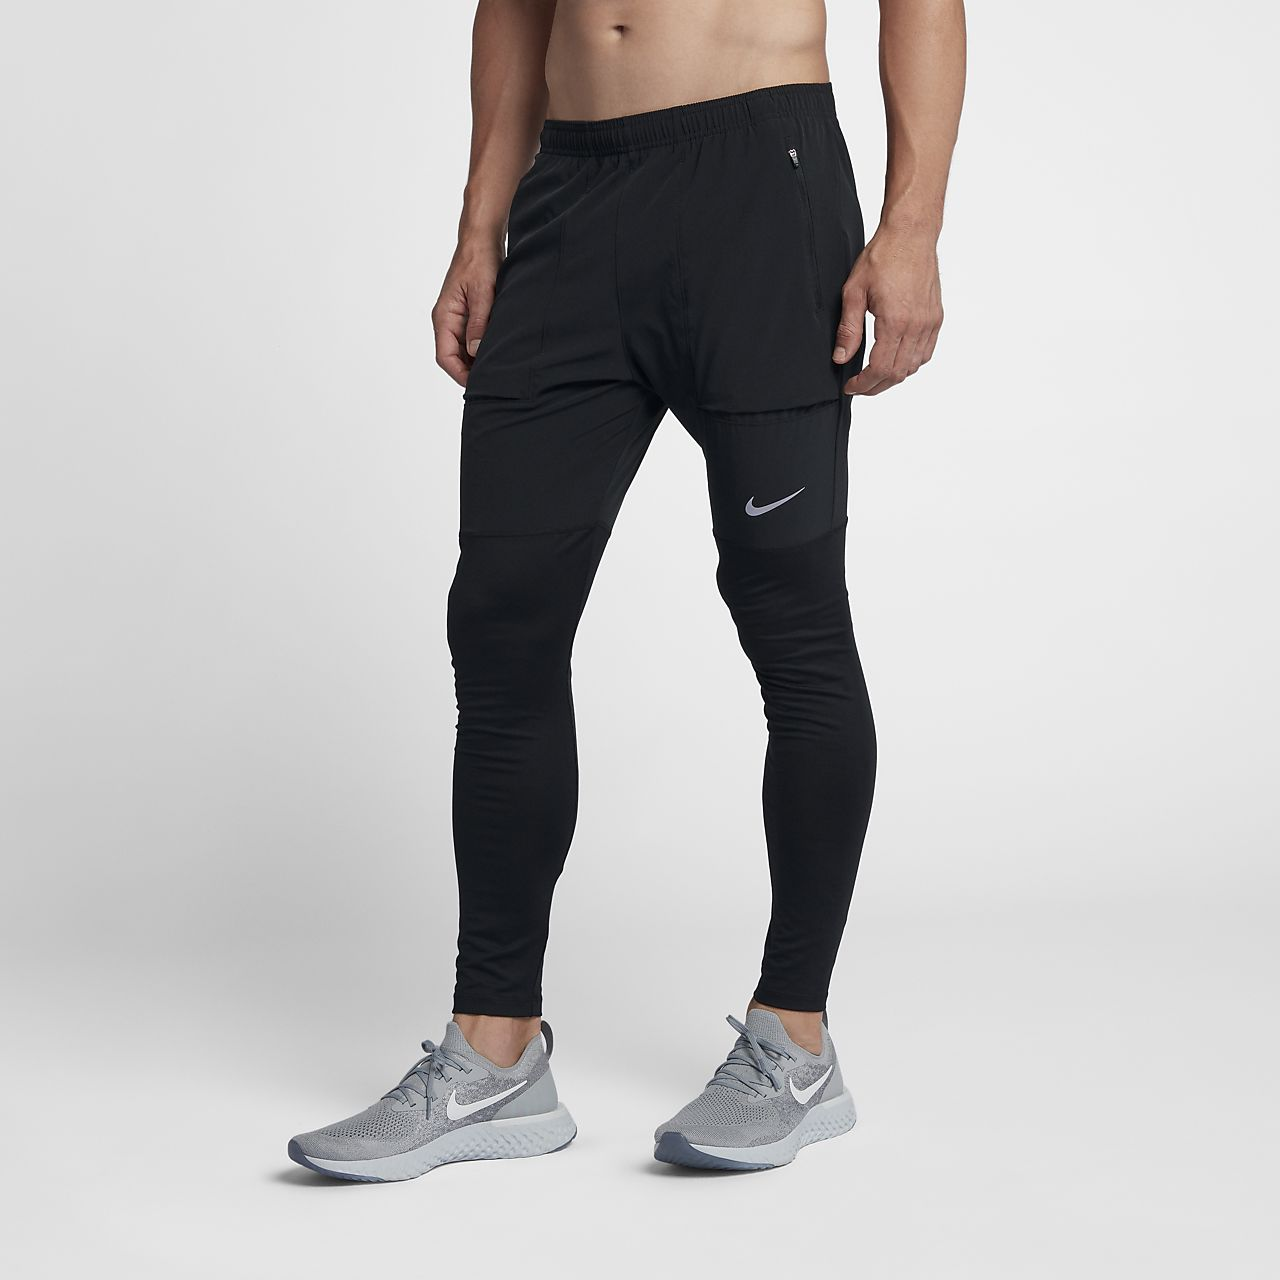 a7352d902bc0 Nike Essential Men s Running Trousers. Nike.com CA